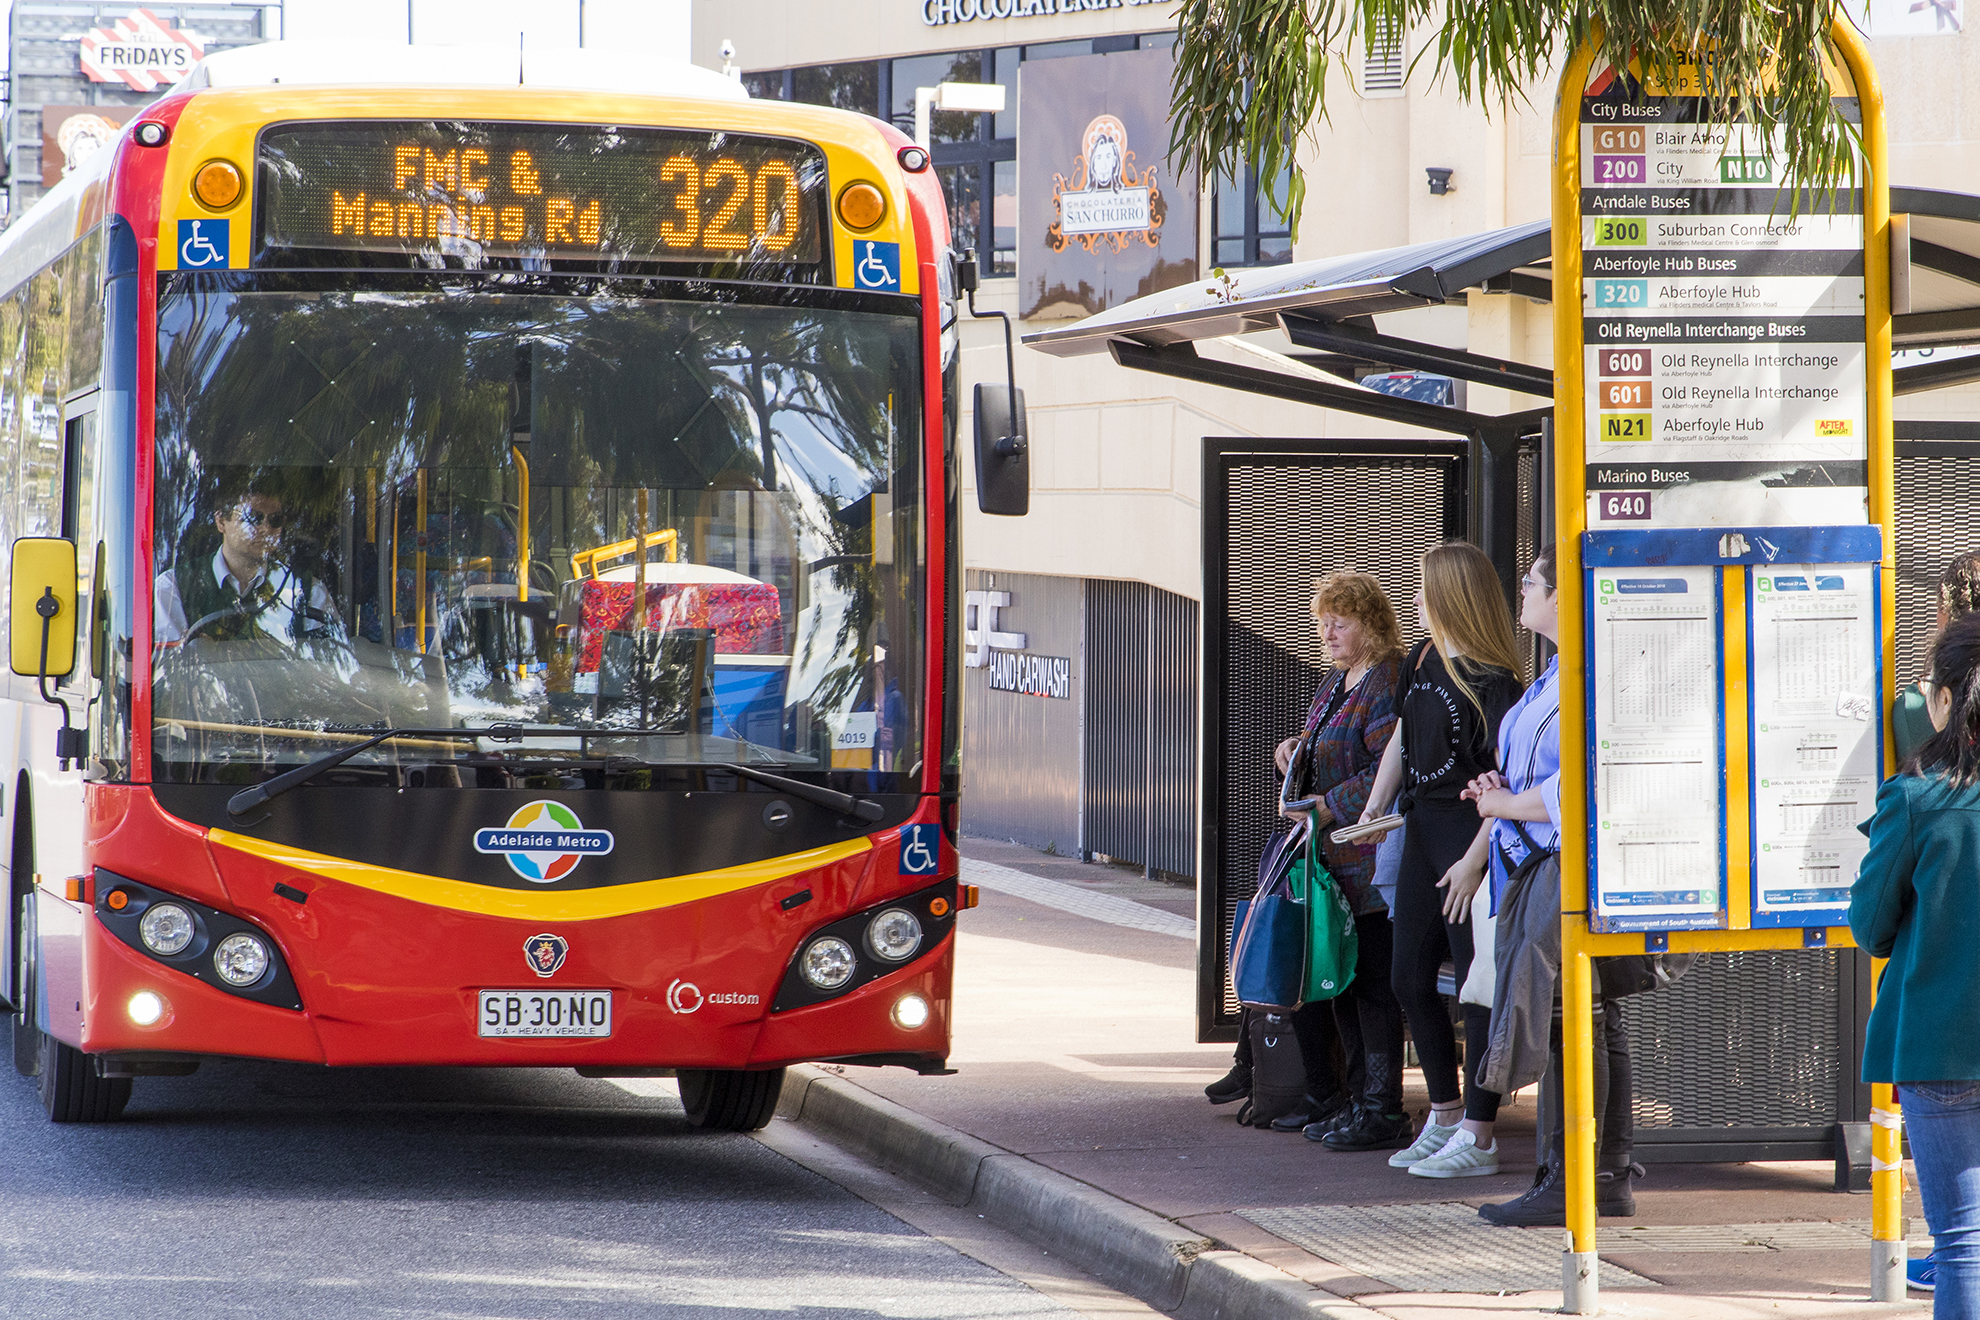 Adelaide bus network